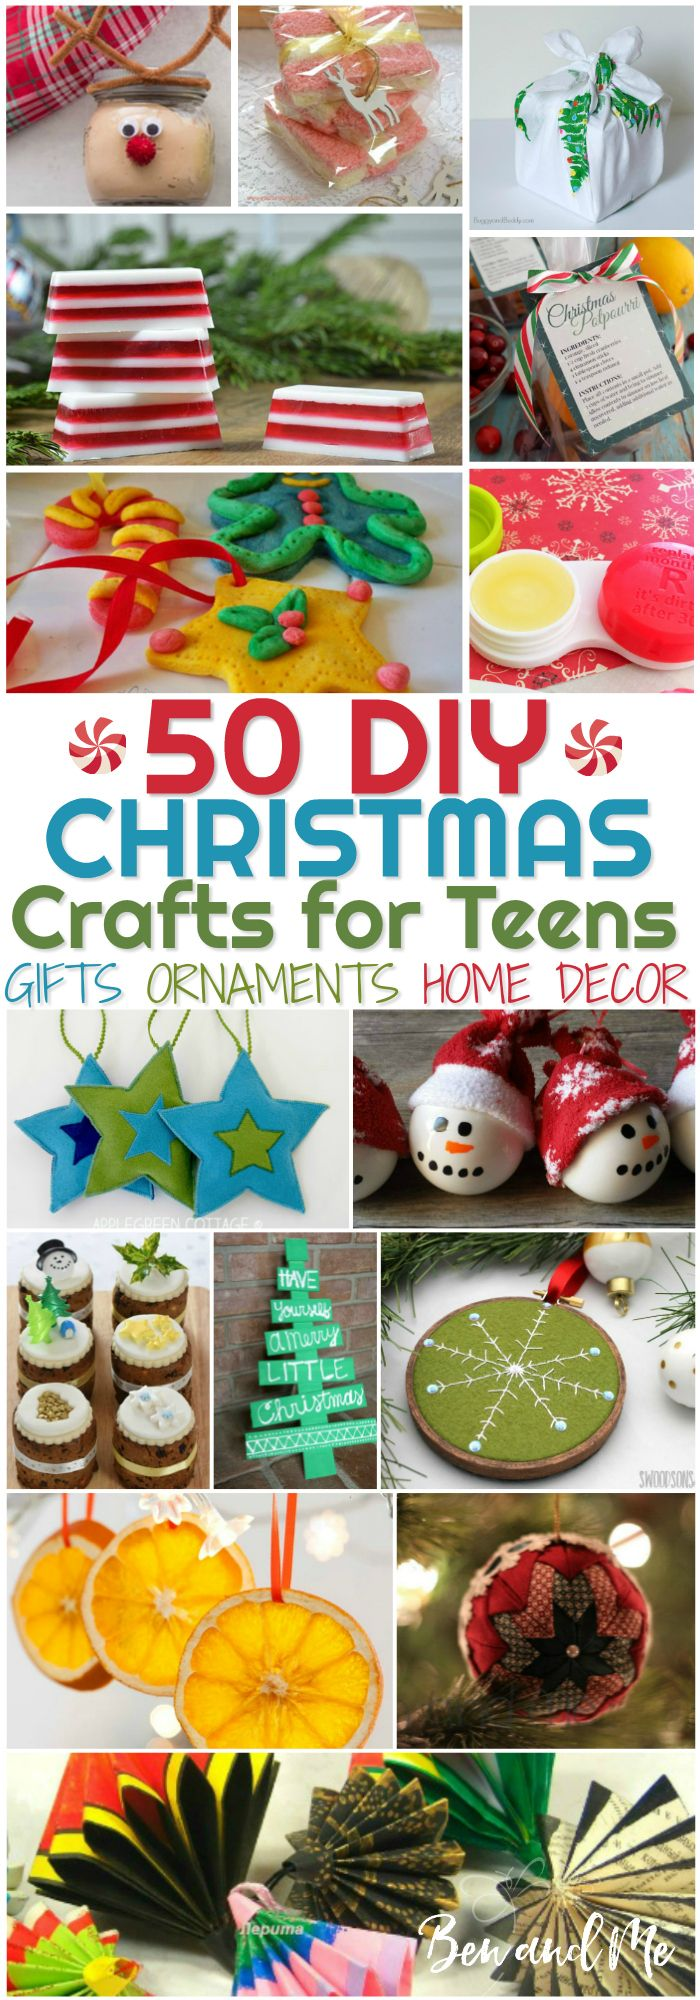 I especially enjoy making beautiful Christmas-themed crafts and DIY projects, and I think there are many teens who enjoy the same. It's not always easy coming up with ideas for DIY Christmas Crafts for Teens to keep their hands busy, so I spent some time gathering some ideas that I thought would set most on the right course.